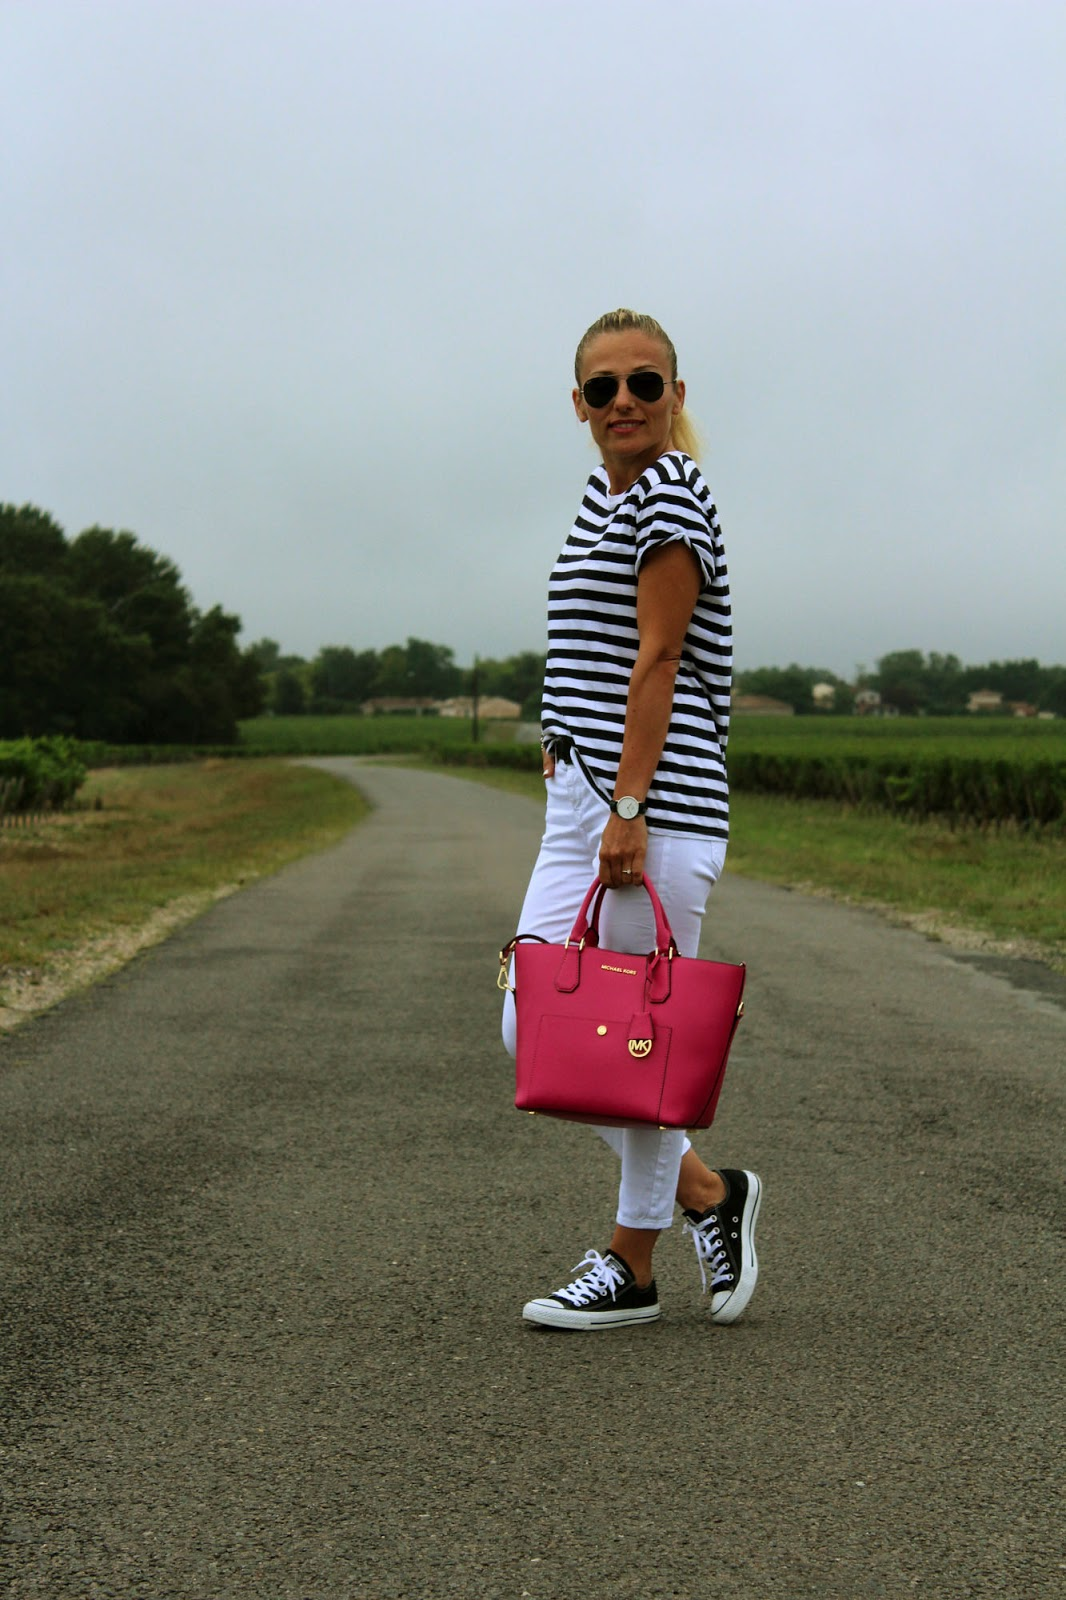 Eniwhere Fashion - Médoc- Stripes shirt and wines